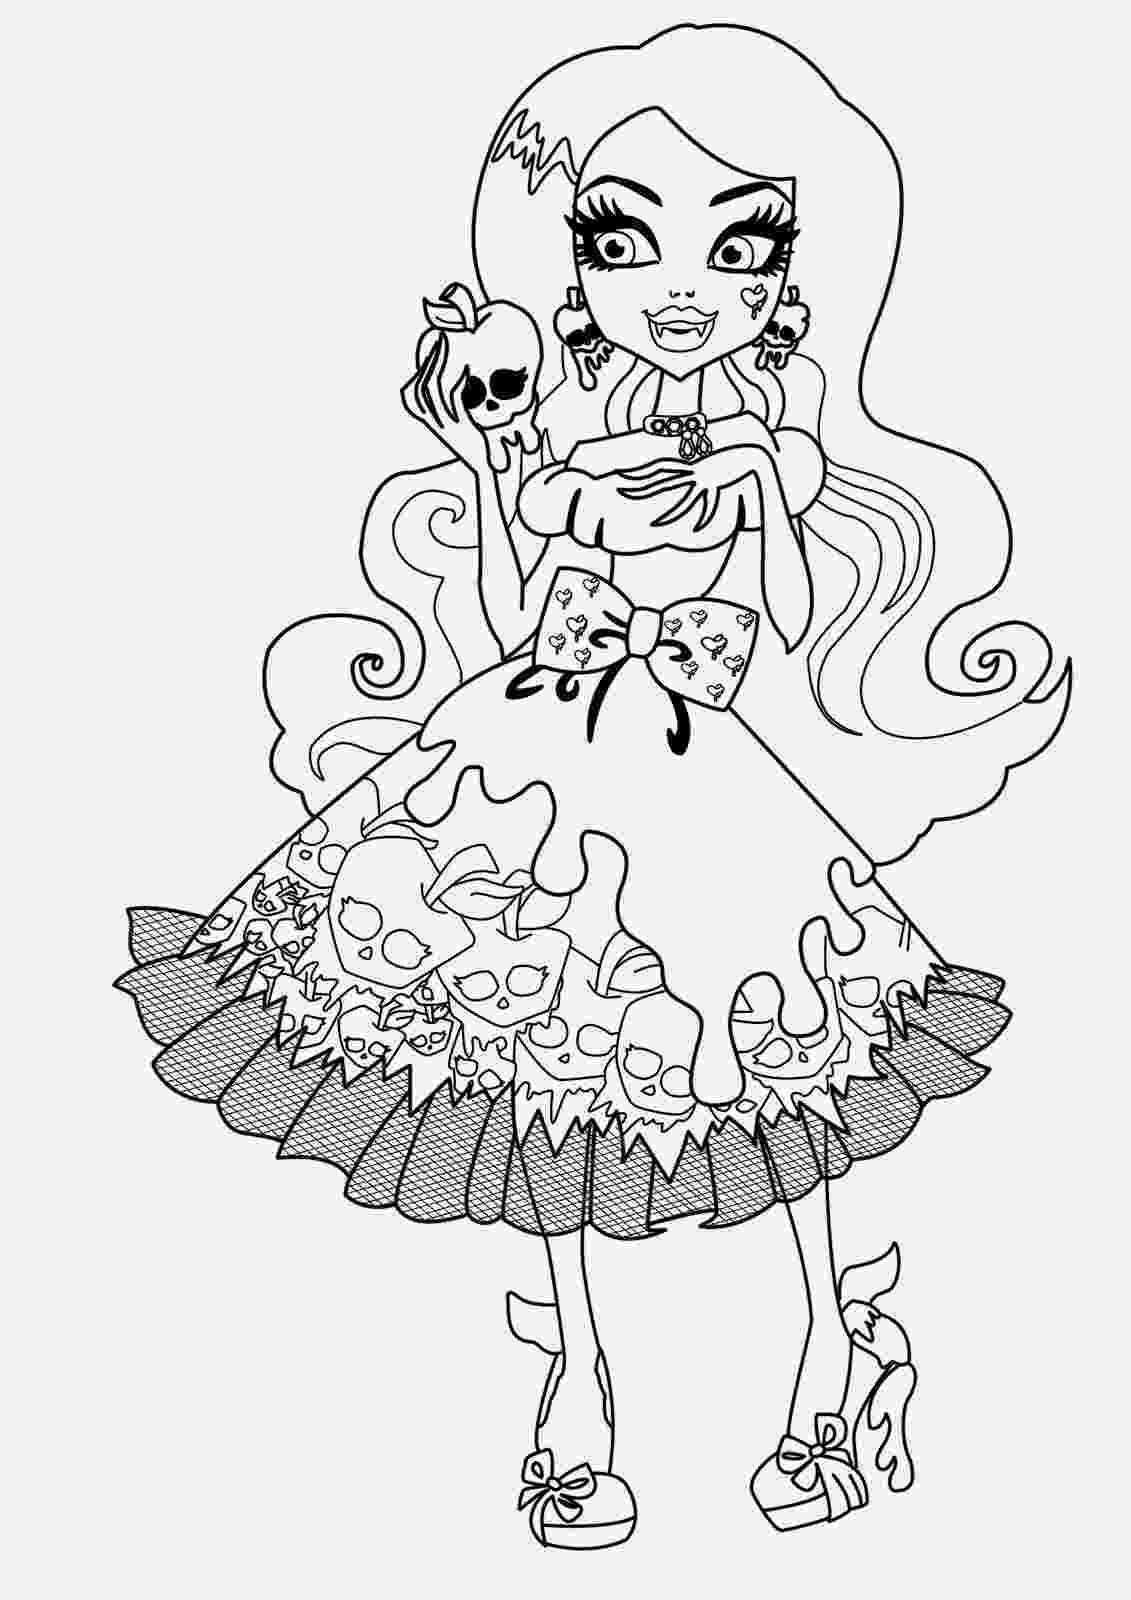 monsters high coloring pages coloring pages monster high coloring pages free and printable coloring high pages monsters 1 1